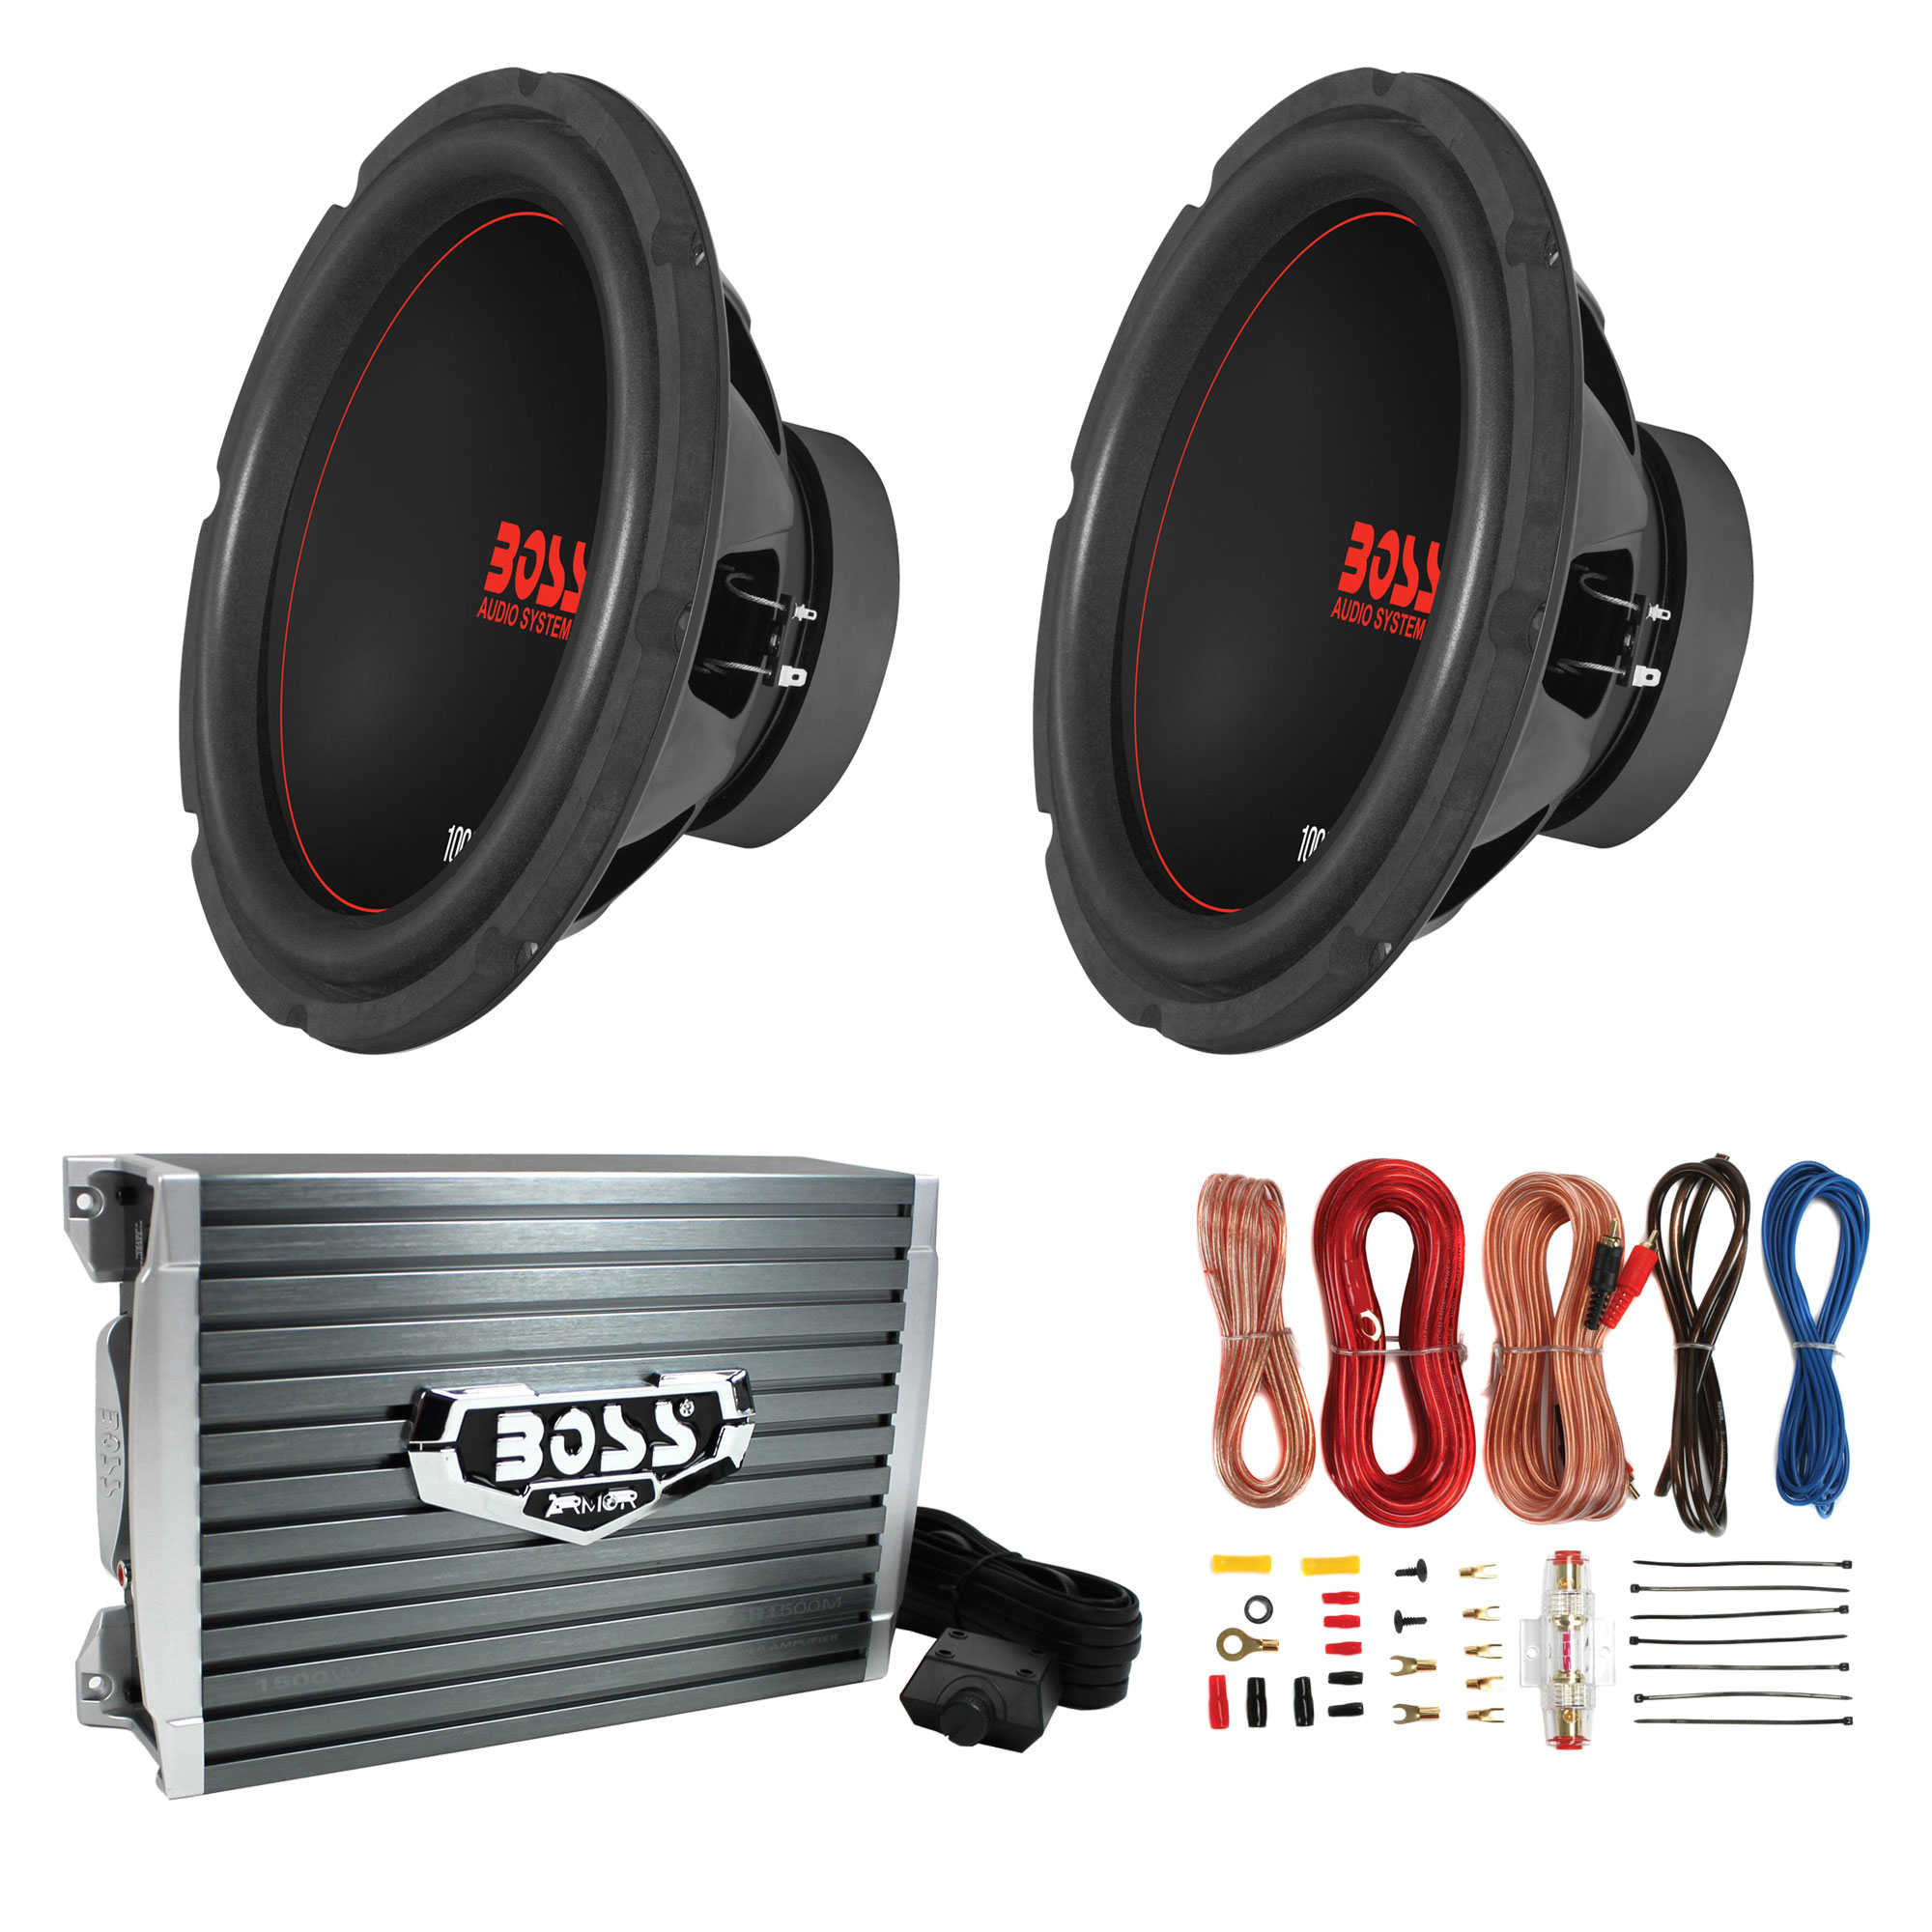 "Boss Chaos Exxtreme 10"" 1000W DVC 4 Ohm Subwoofer (Pair) W"